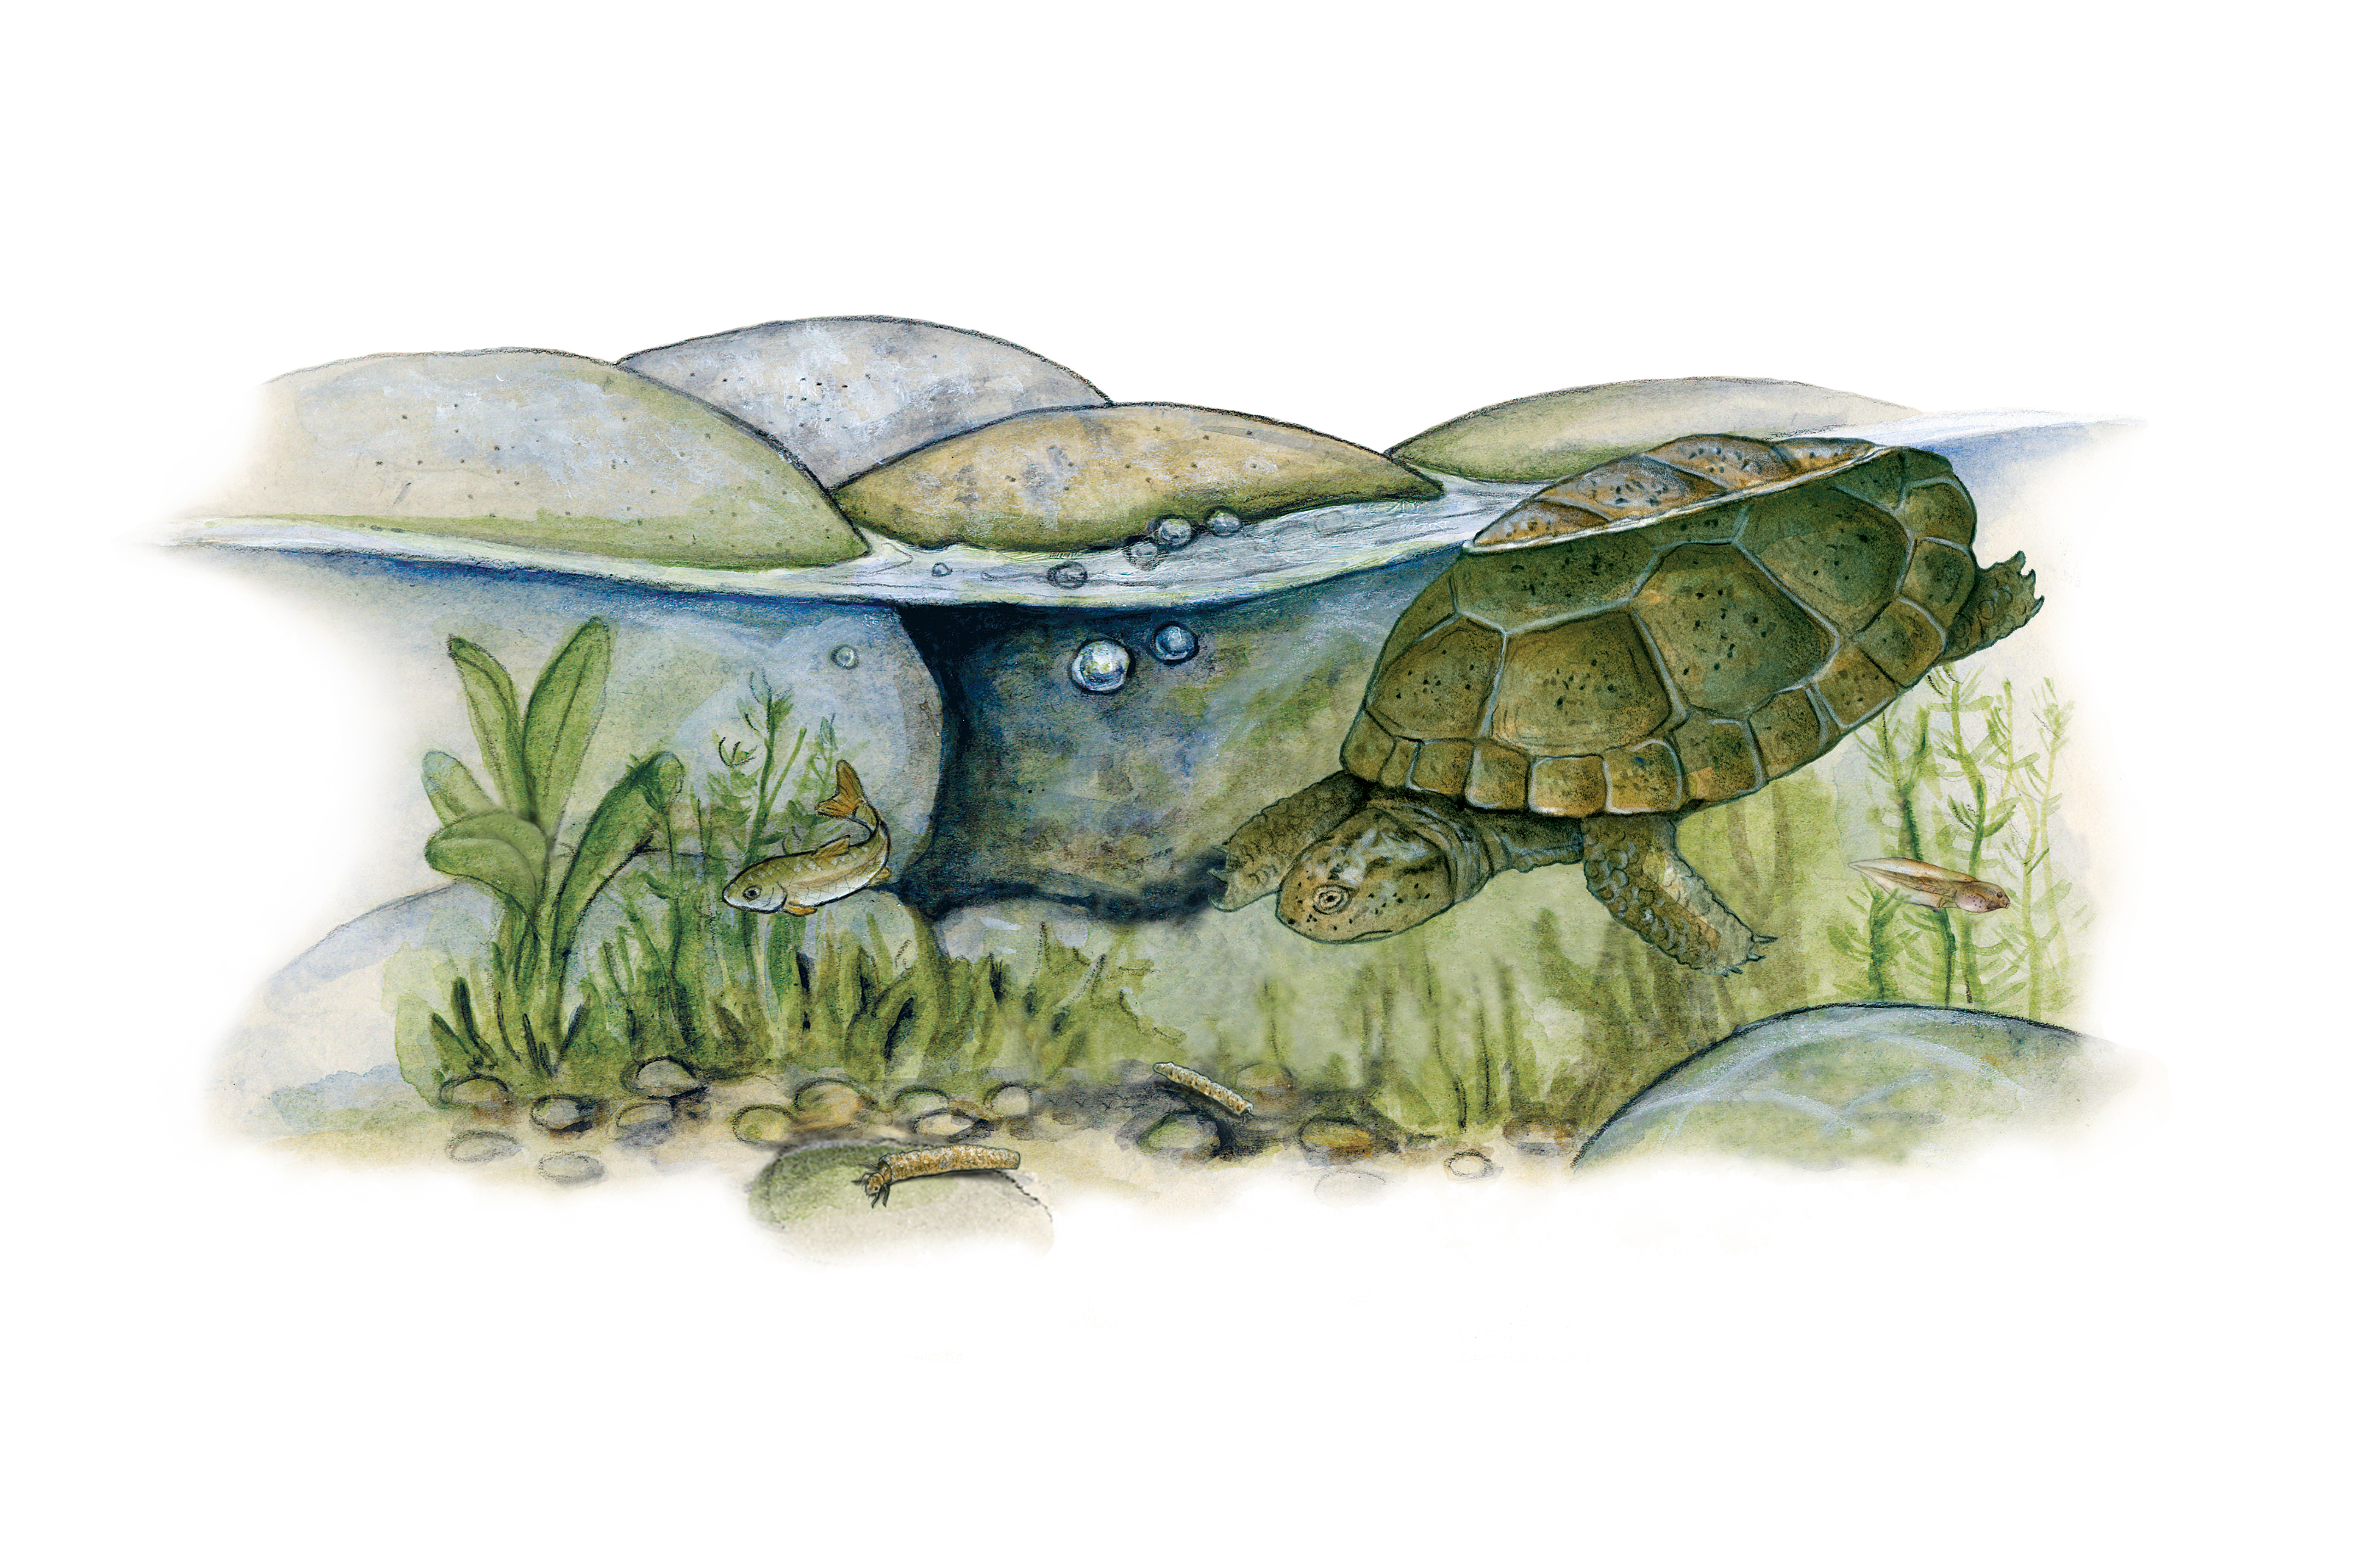 Pond Turtle food habits. Illustration by Peter Gaede.